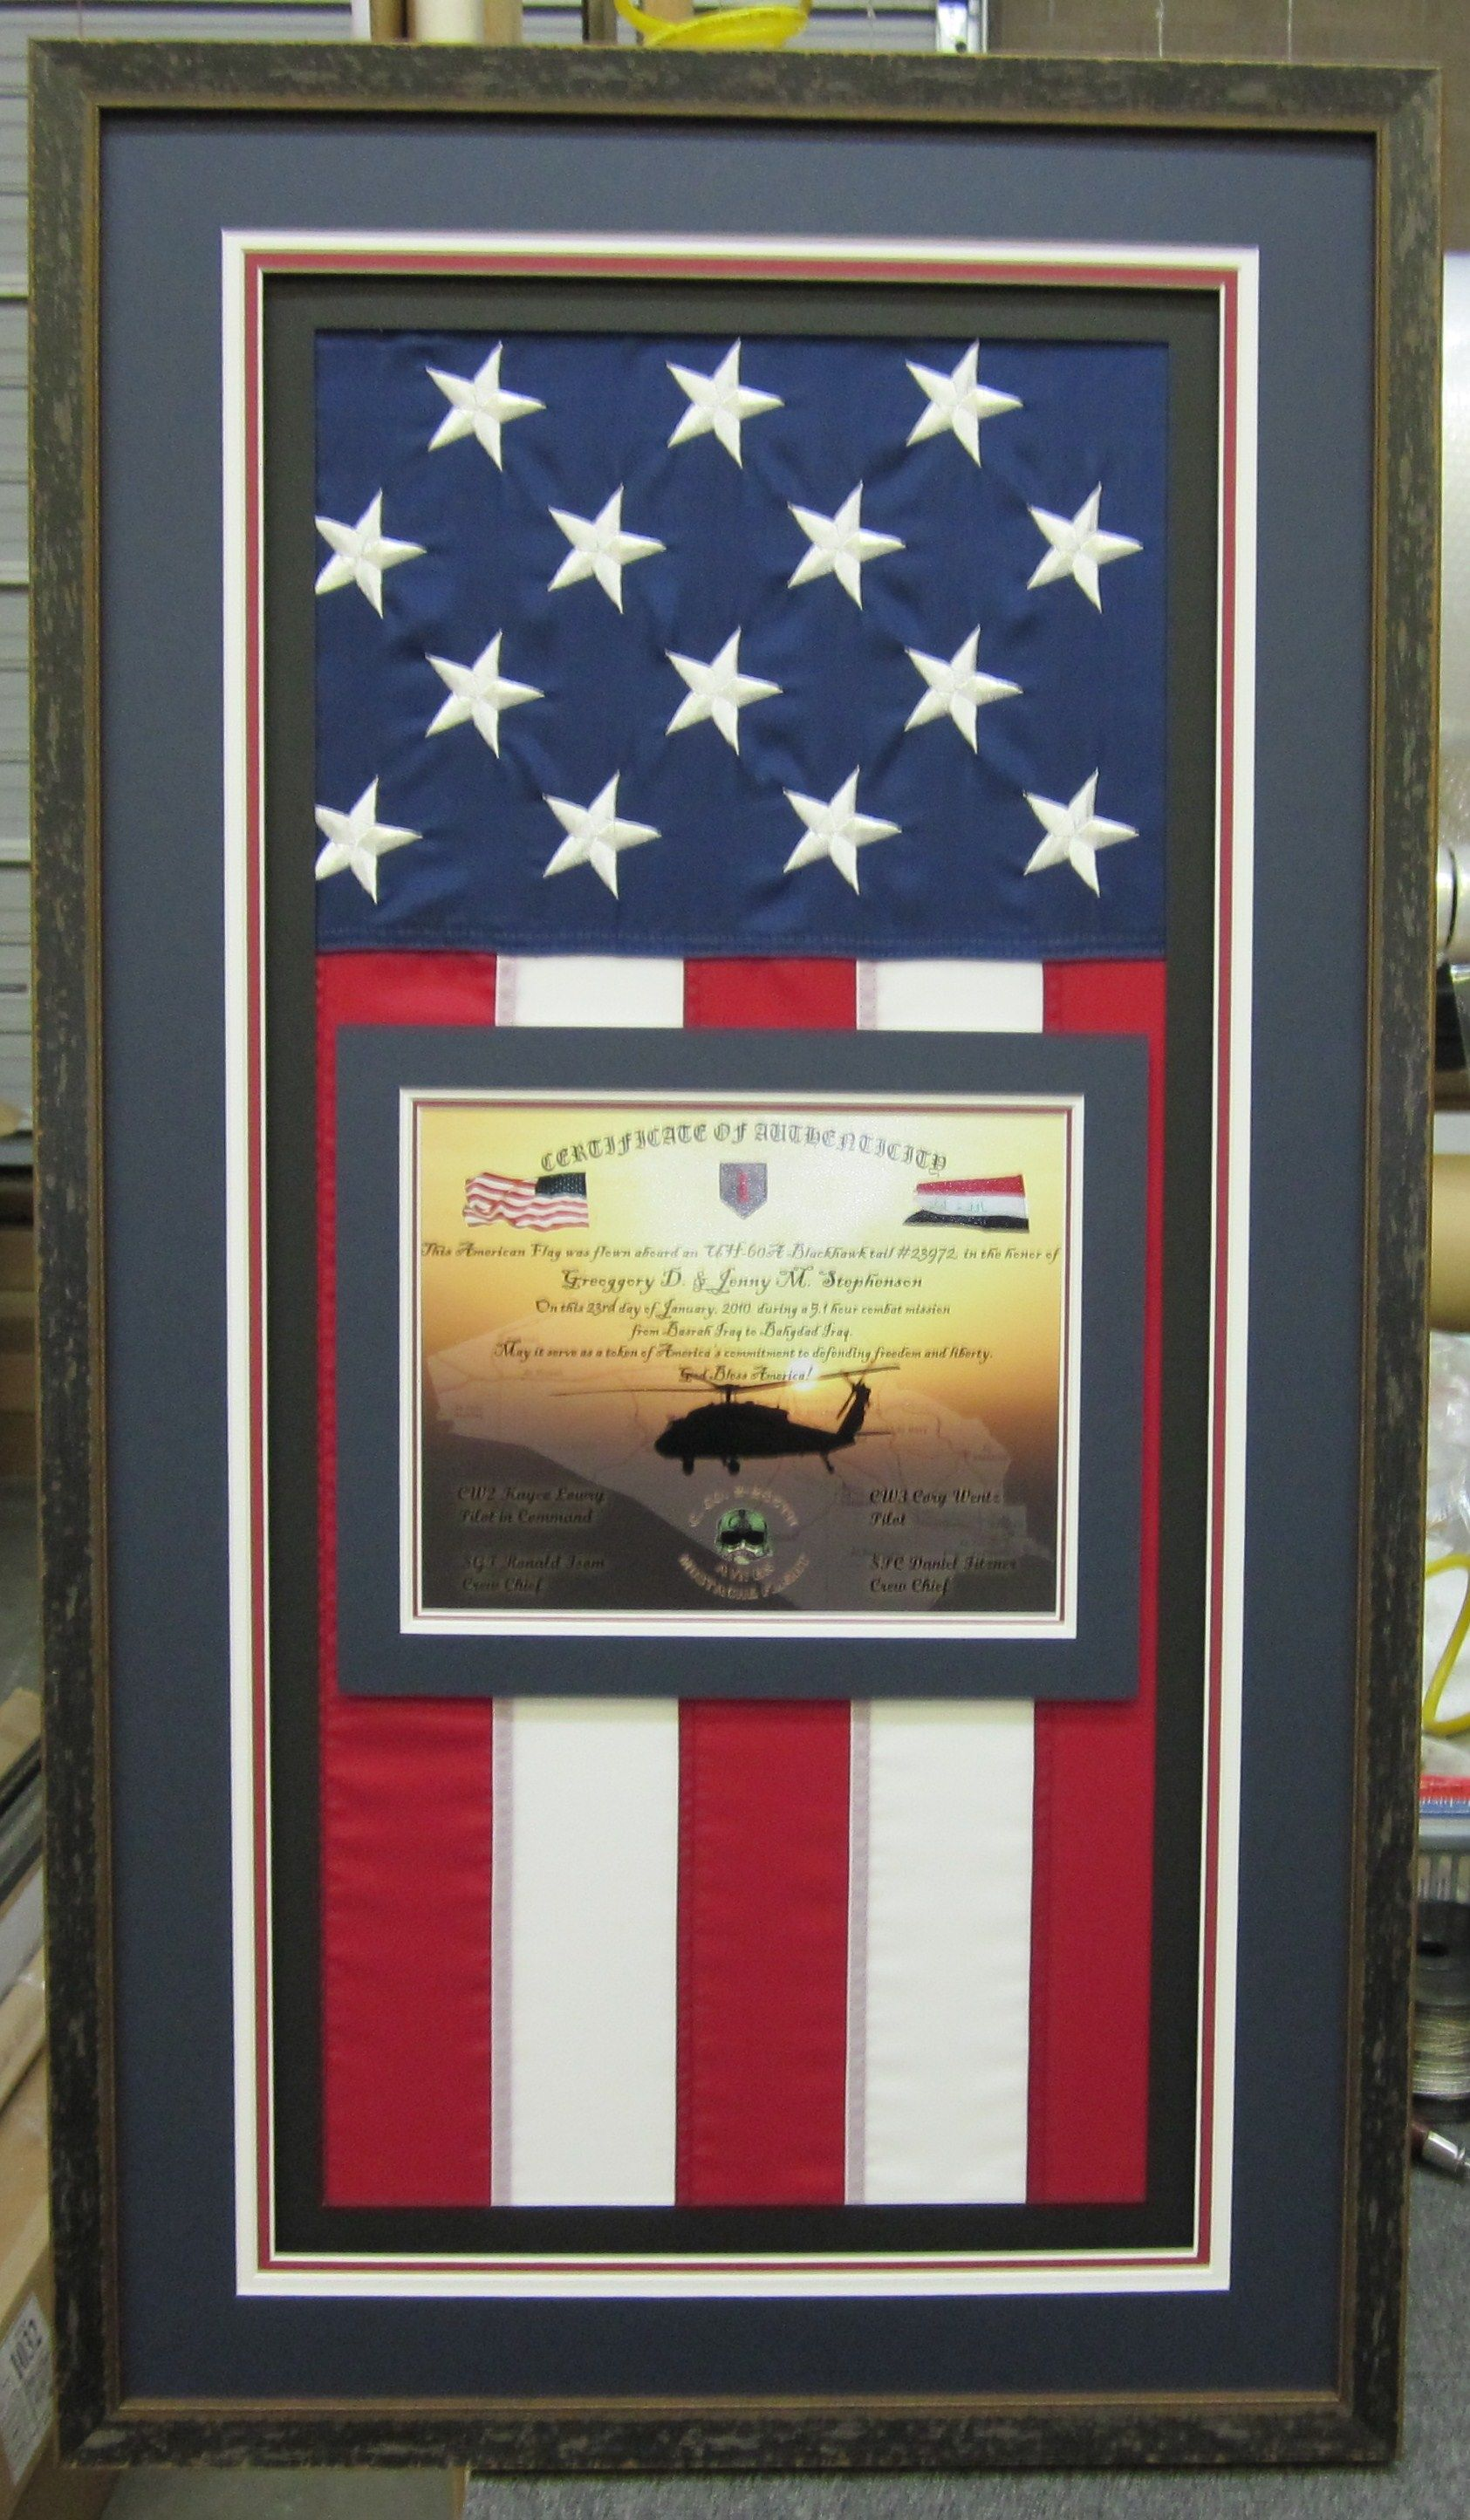 This Flag Was Flown Over Iraq In Honor Of Greggory And Jenny Stephenson Serving As A Token Of America S Commitment Flag Display Flag Display Case Framed Flag